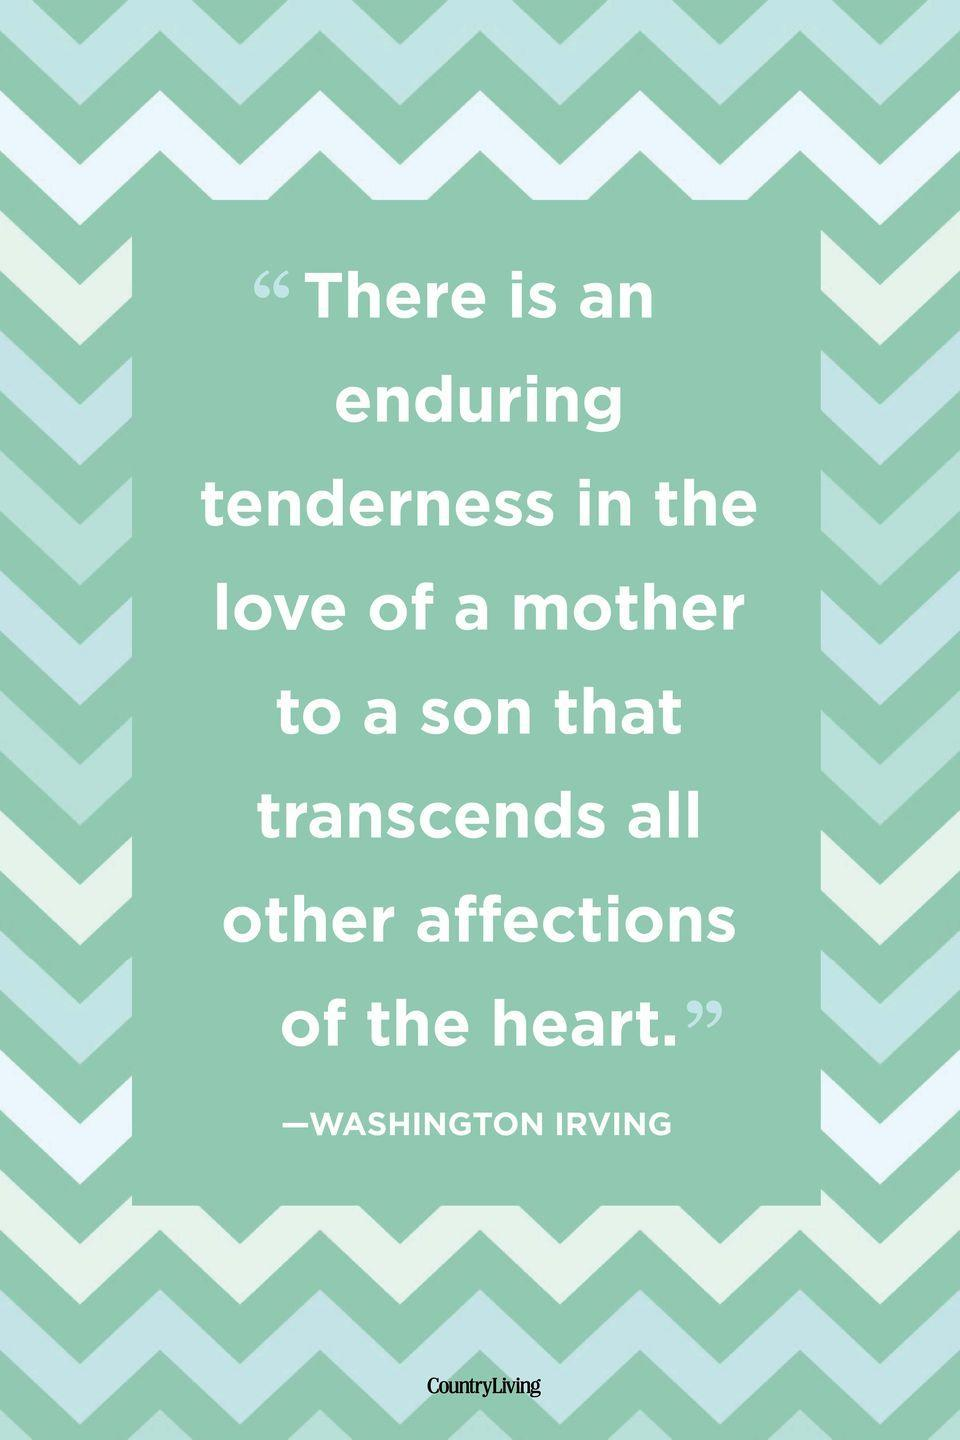 "<p>""There is an enduring tenderness in the love of a mother to a son that transcends all other affections of the heart.""</p>"